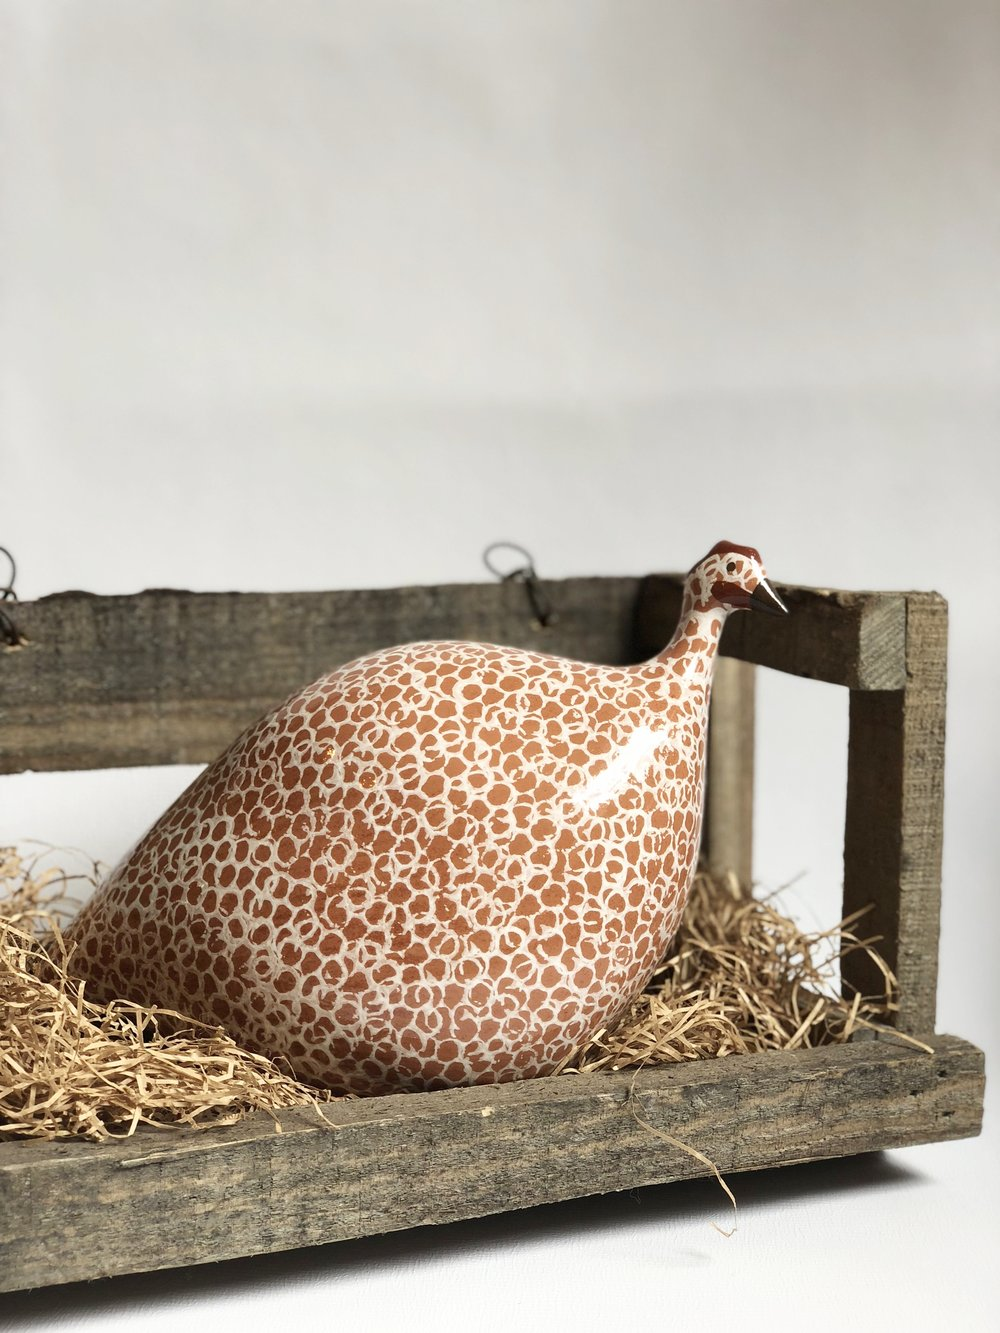 Guinea Fowl nest sold separately